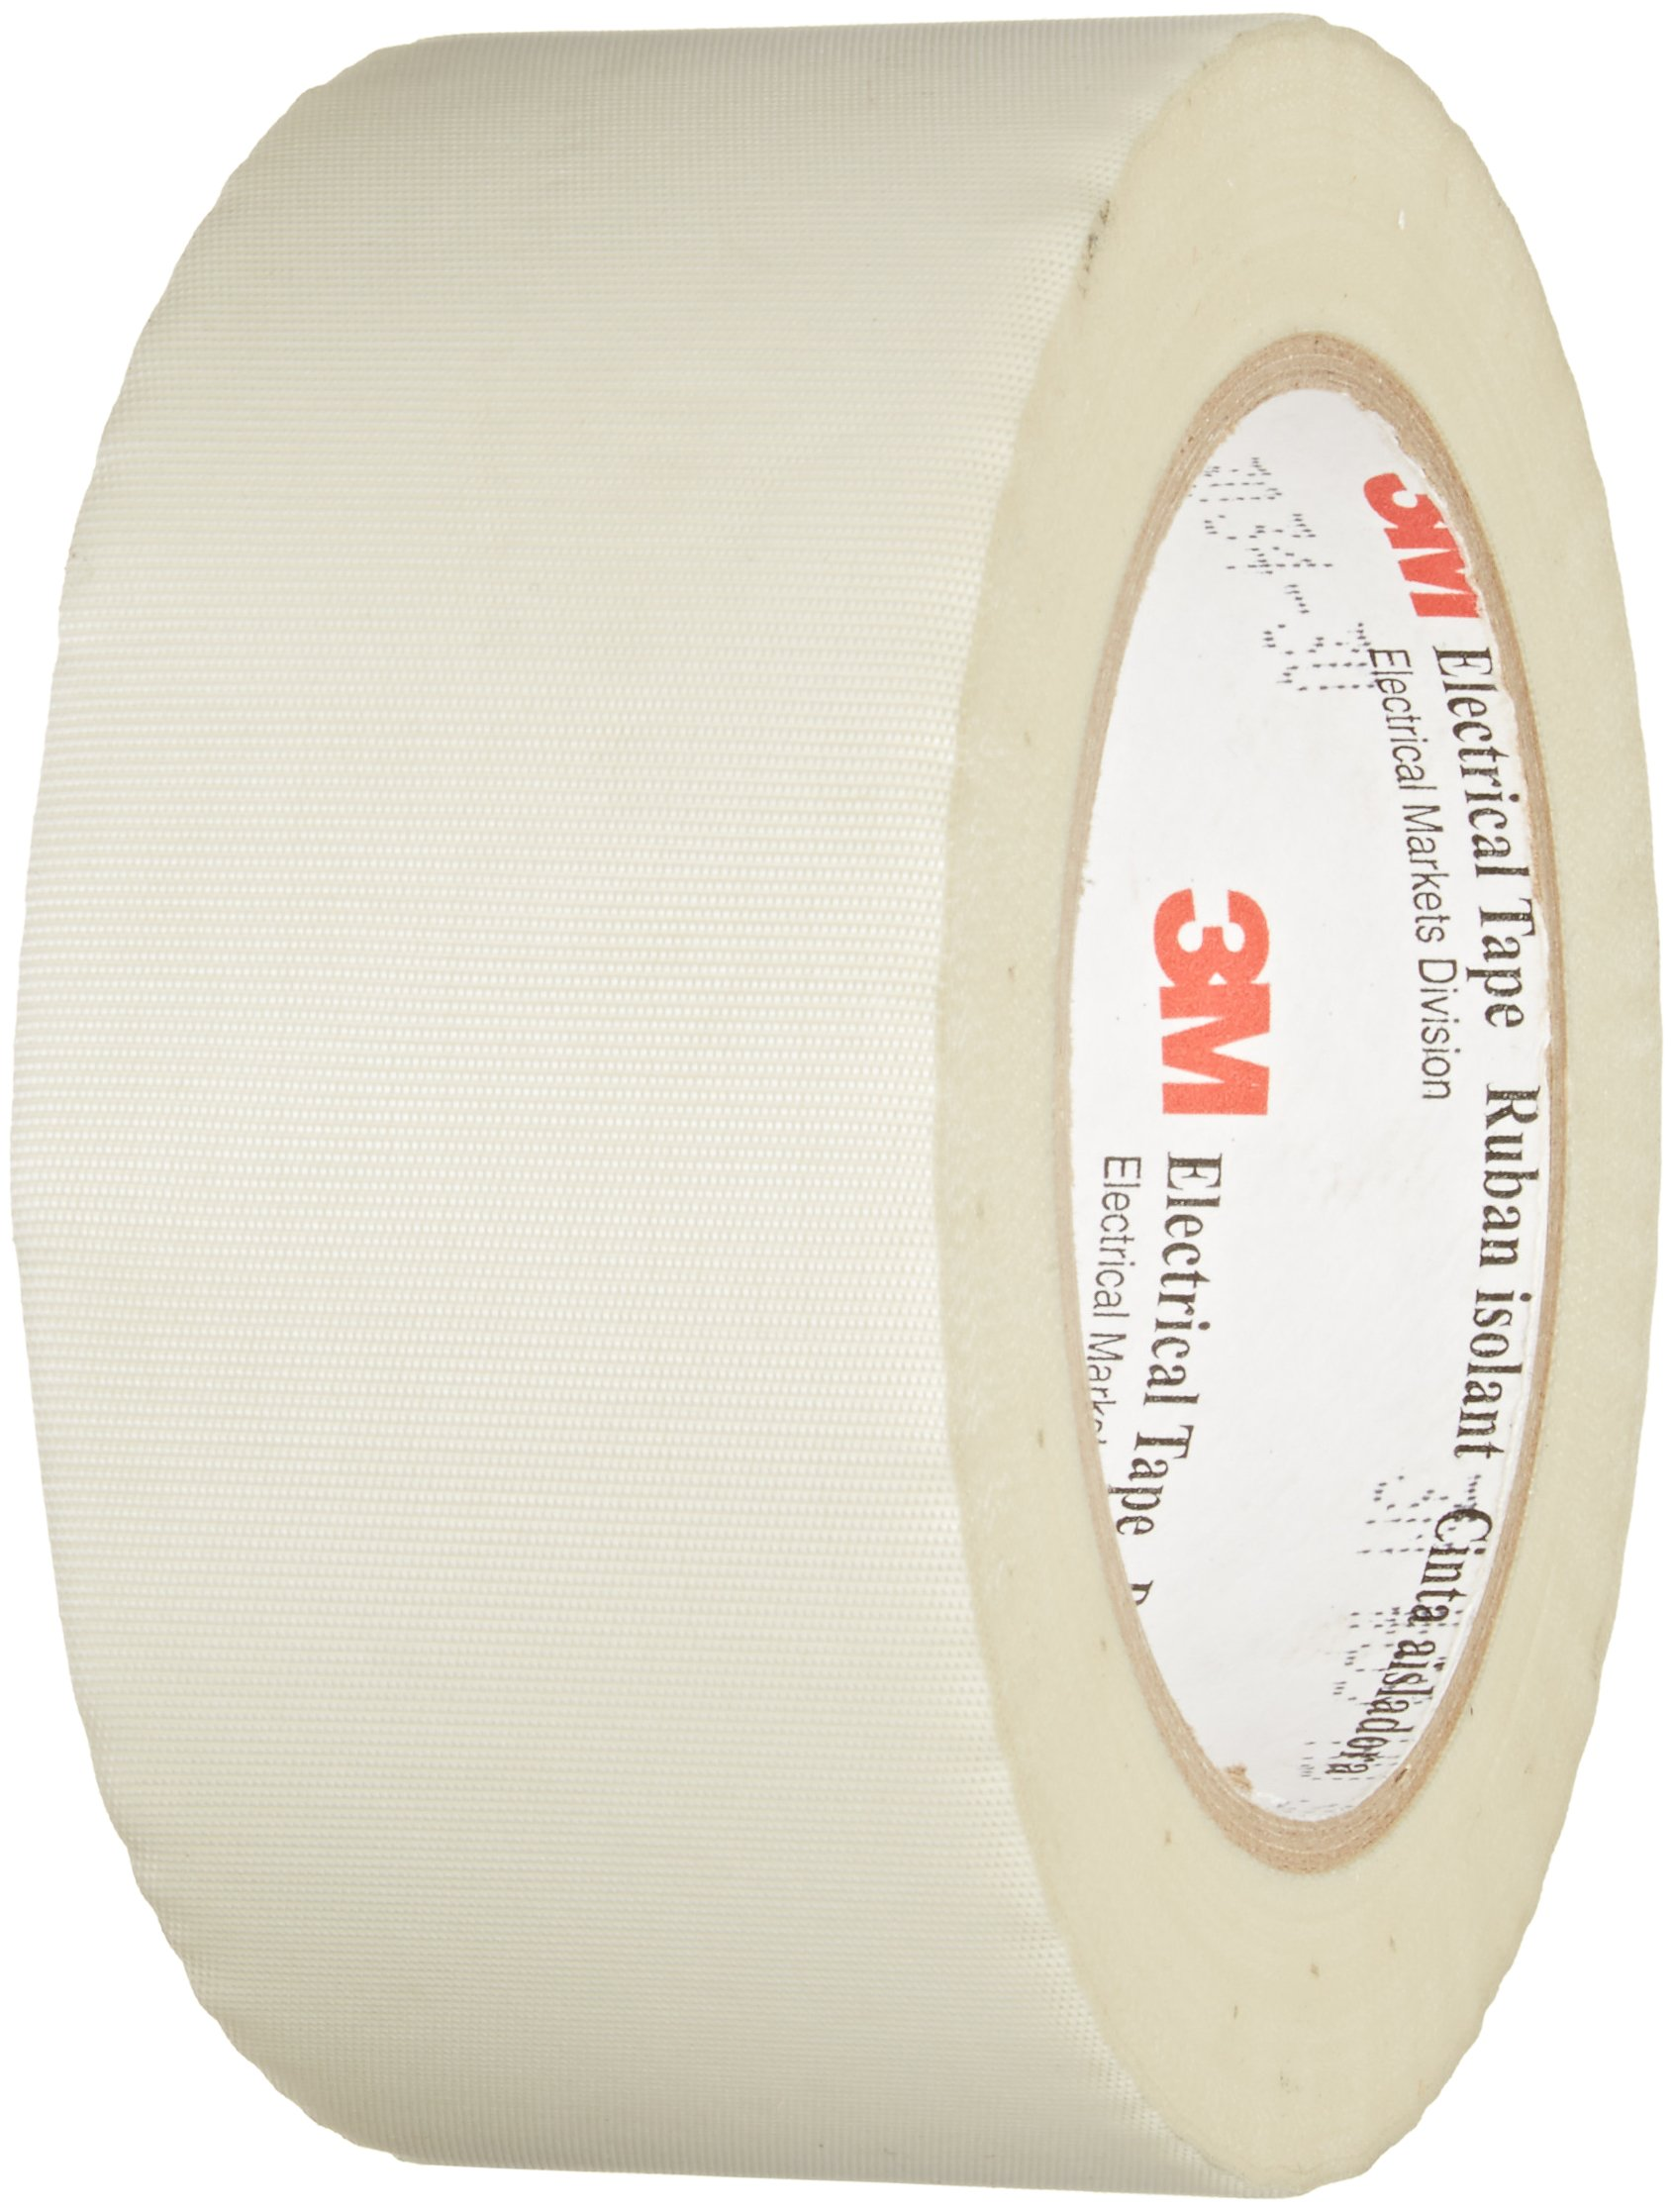 3M Glass Cloth Electrical Tape 69, 2'' width x 36yd length (1 roll), White